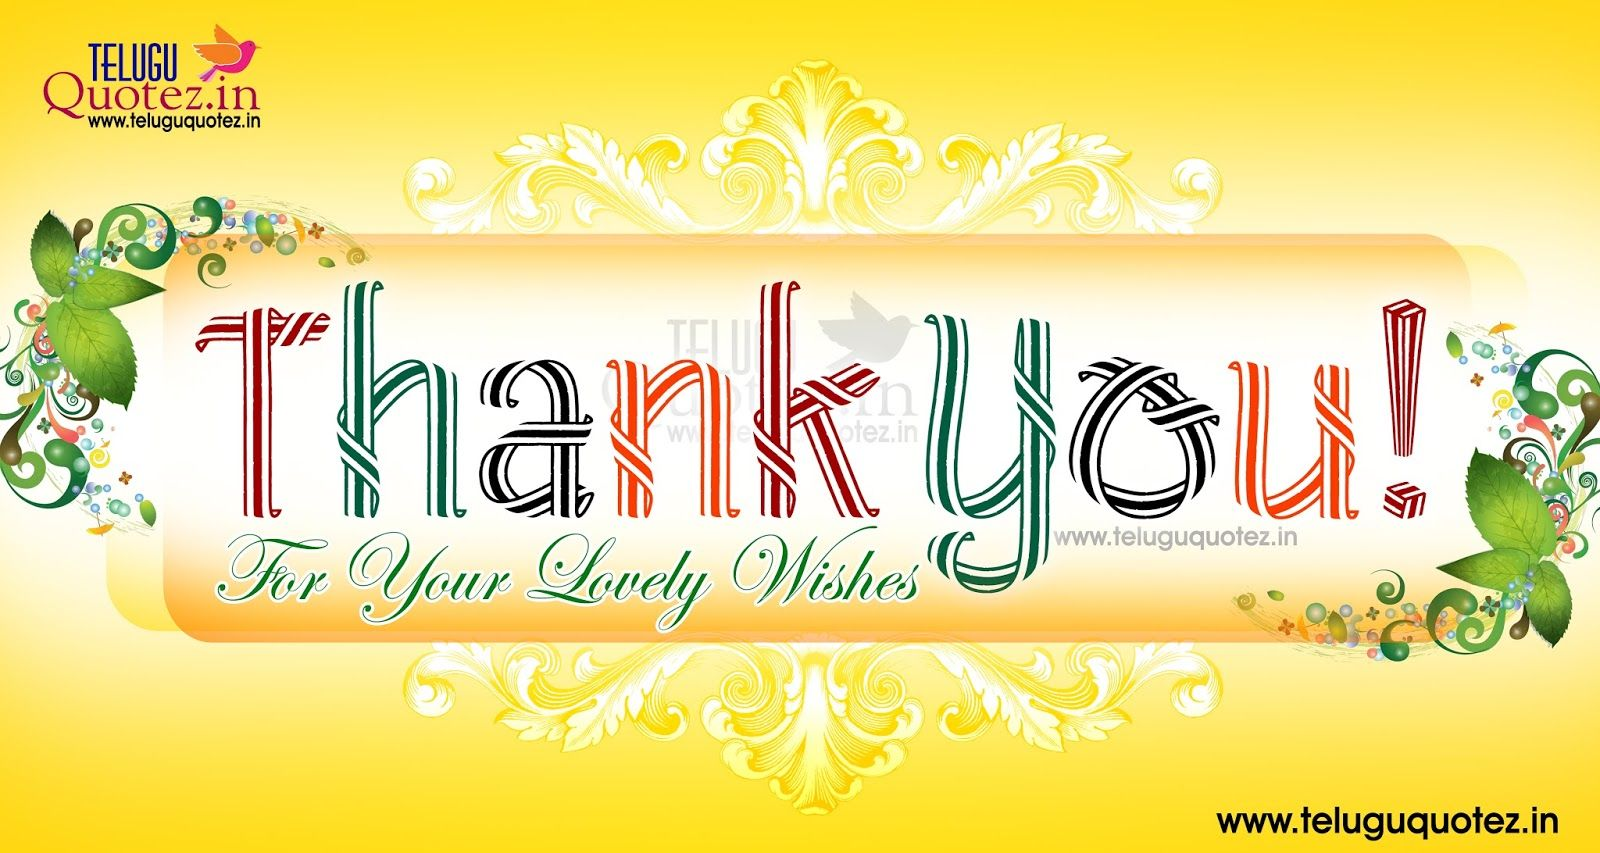 thank you quotes for birthday wishes images teluguquotez